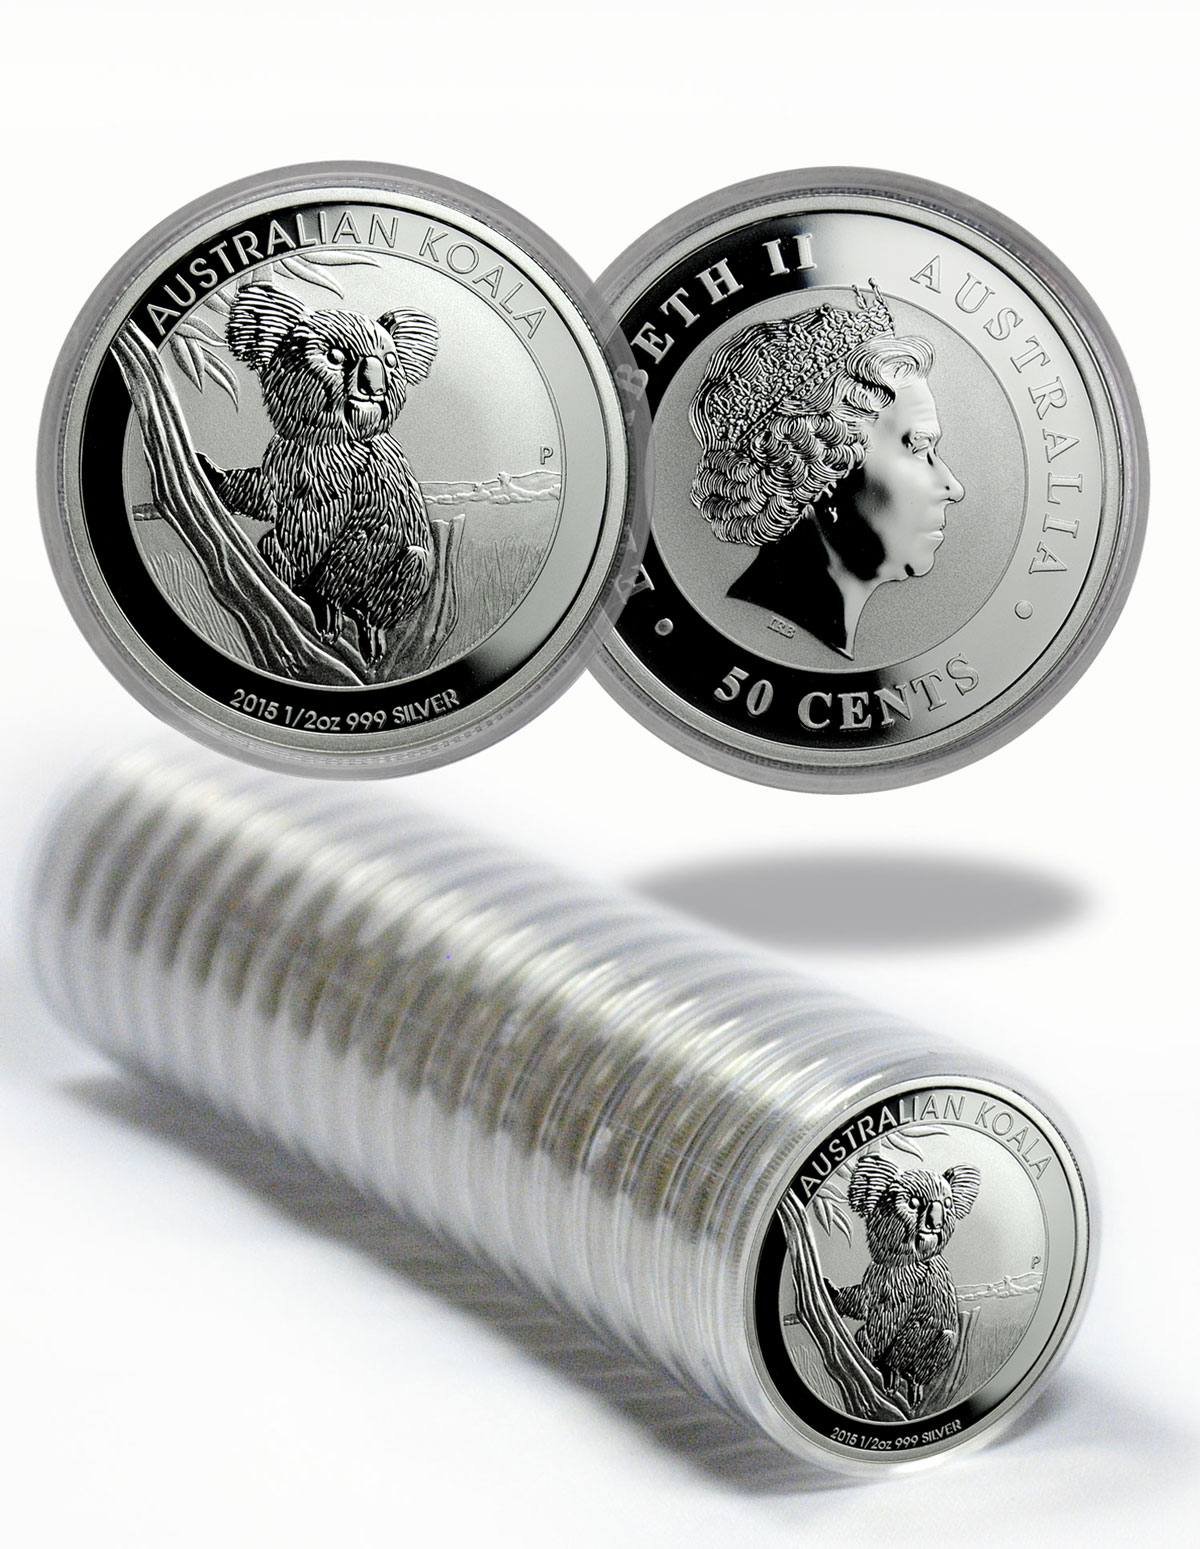 2015 Australia $1 1 oz. Silver Koala - Roll of 20 Coins - GEM BU (Original Mint Capsule)